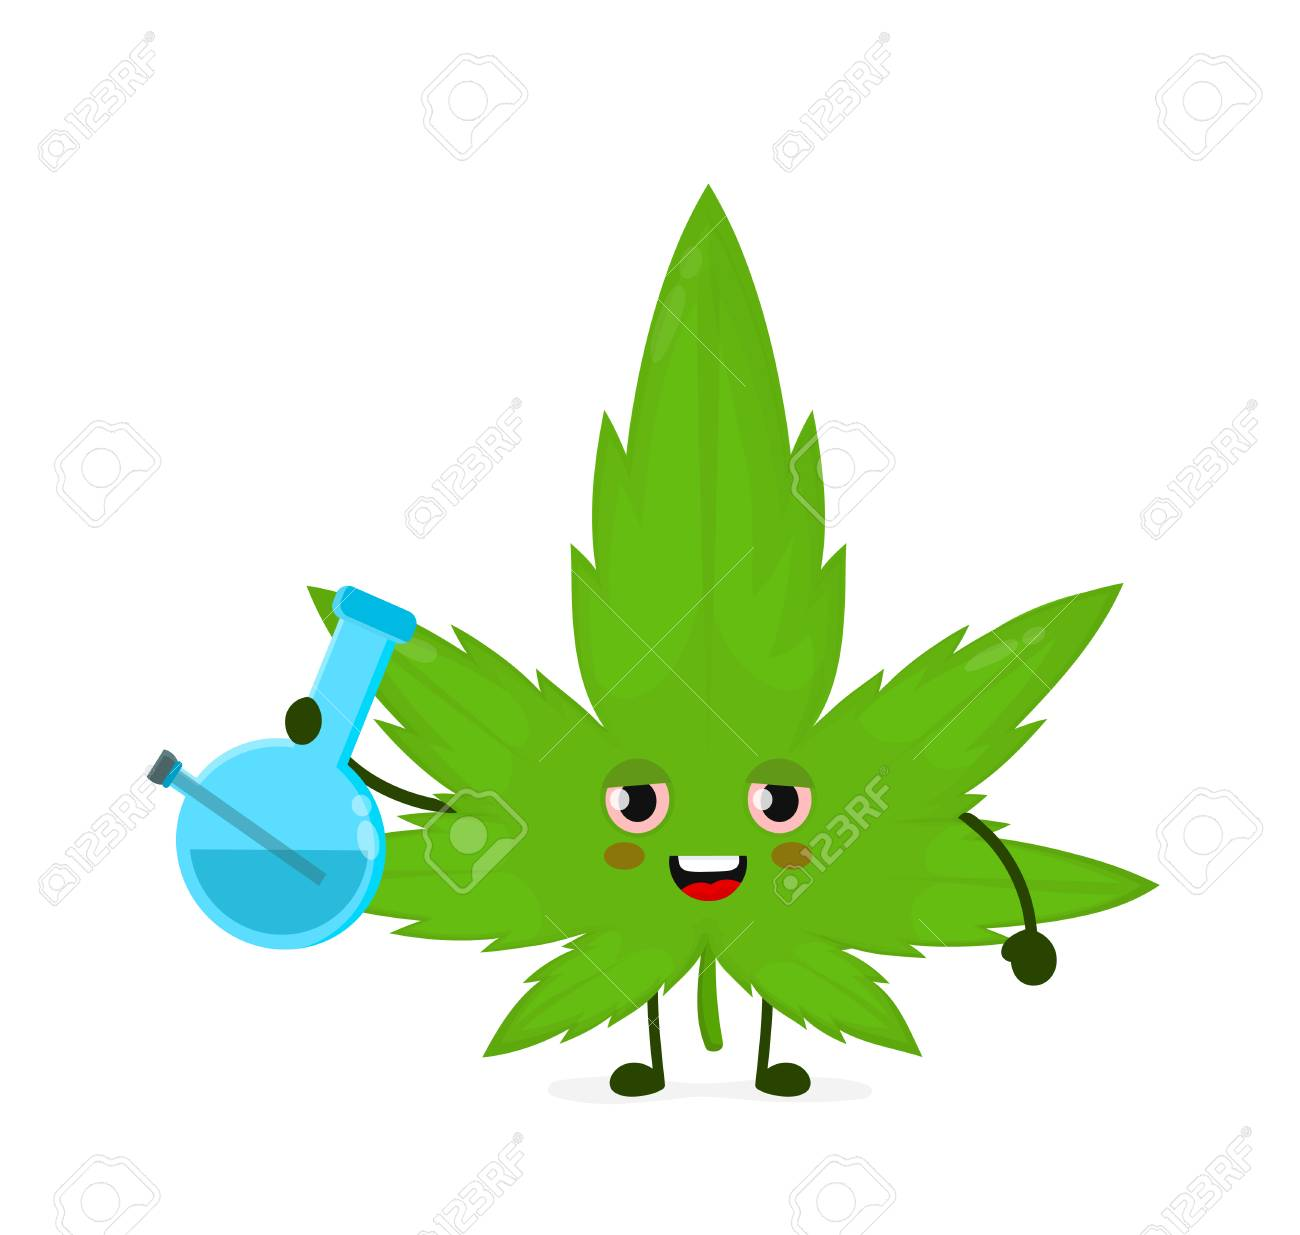 Cute Funny Smiling Happy Marijuana Weed Leaf Smoke With Bong Royalty Free Cliparts Vectors And Stock Illustration Image 117403050